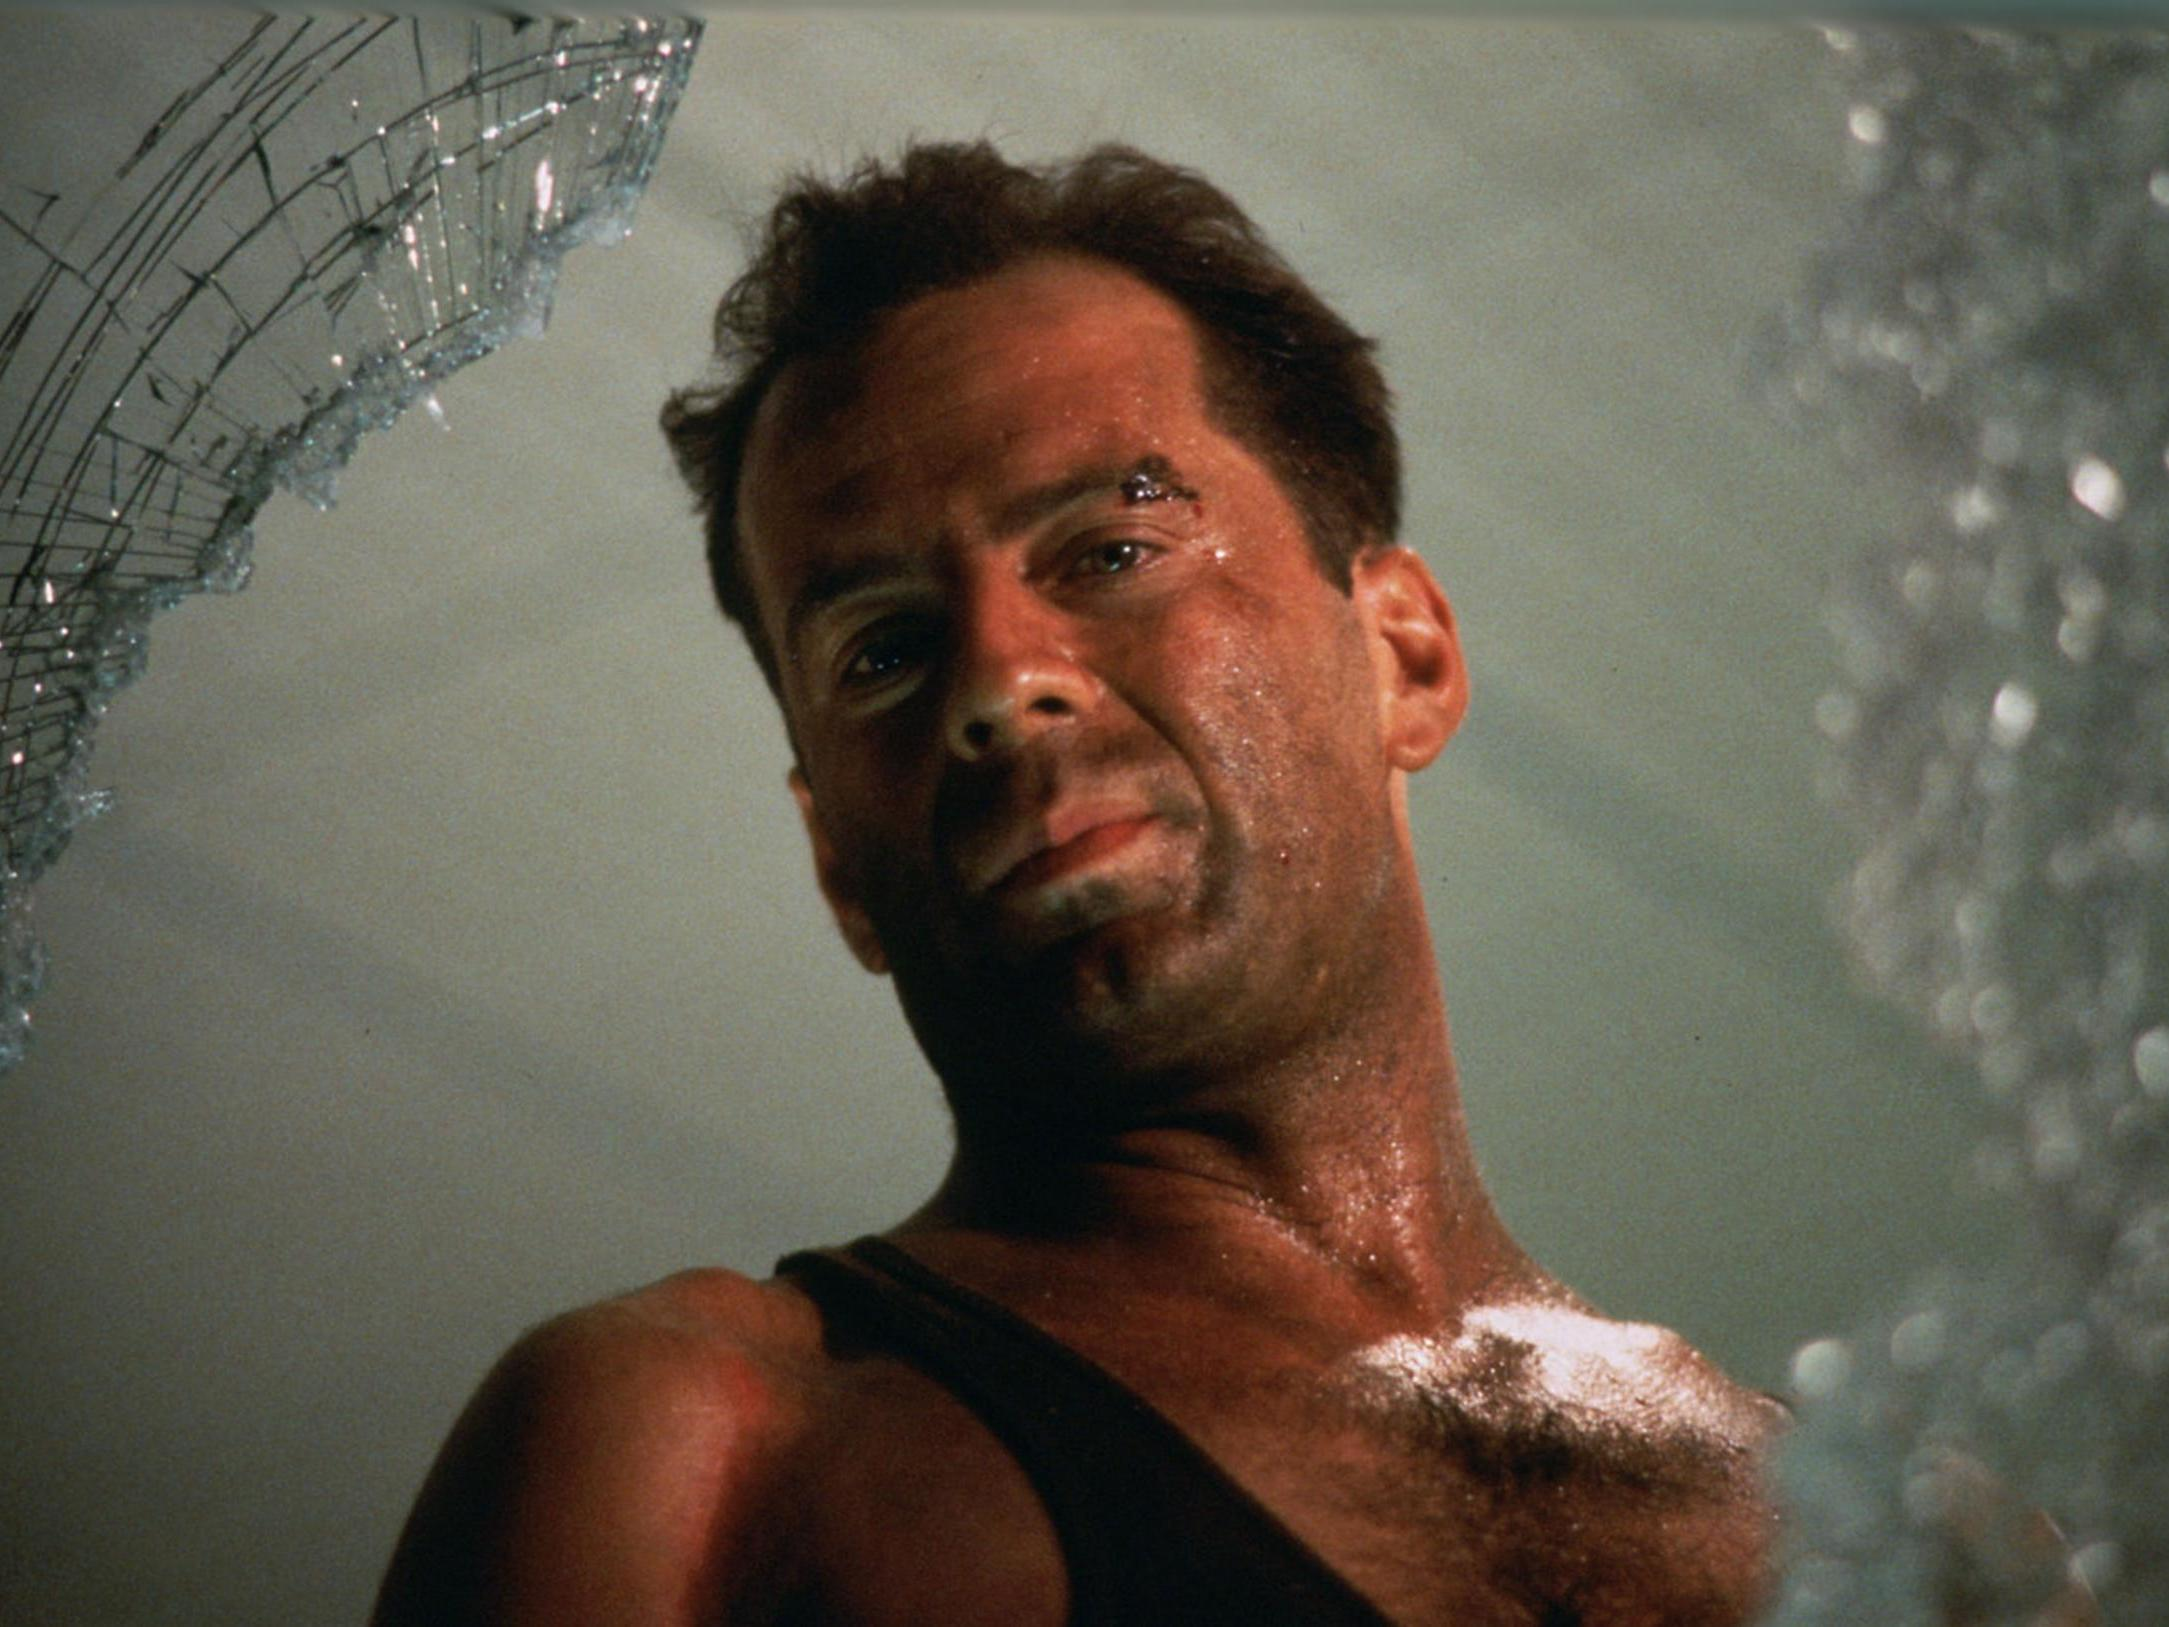 The full story of how Die Hard was created